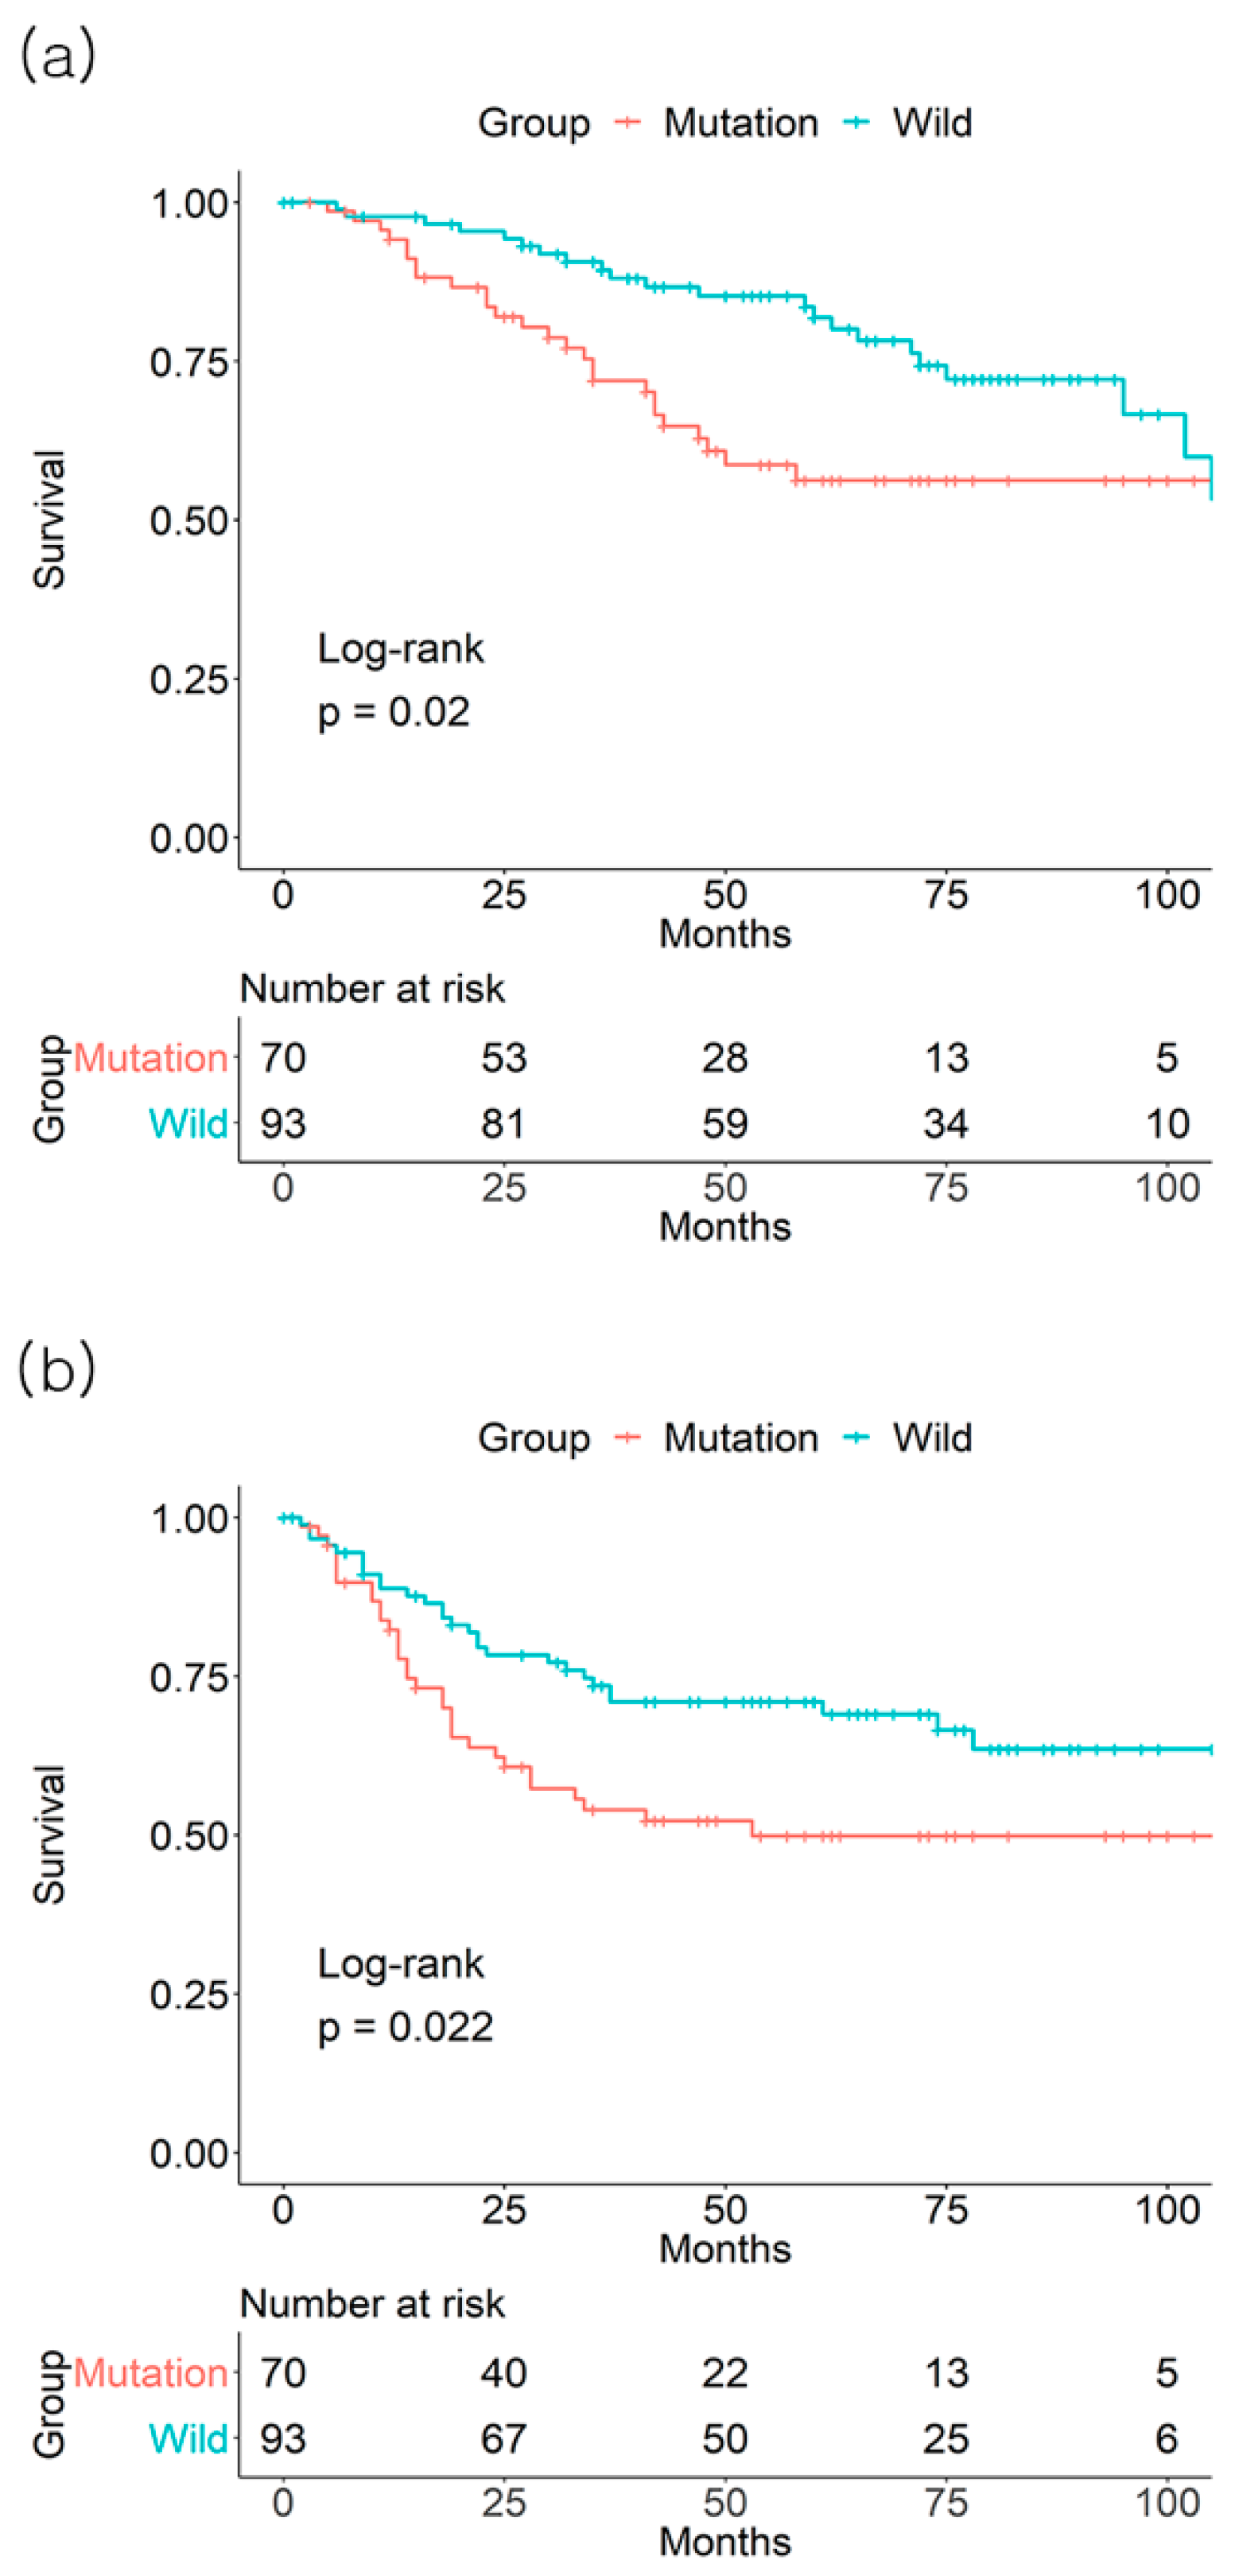 Jcm Free Full Text Colorectal Cancer Prognosis Is Not Associated With Braf And Kras Mutations A Strobe Compliant Study